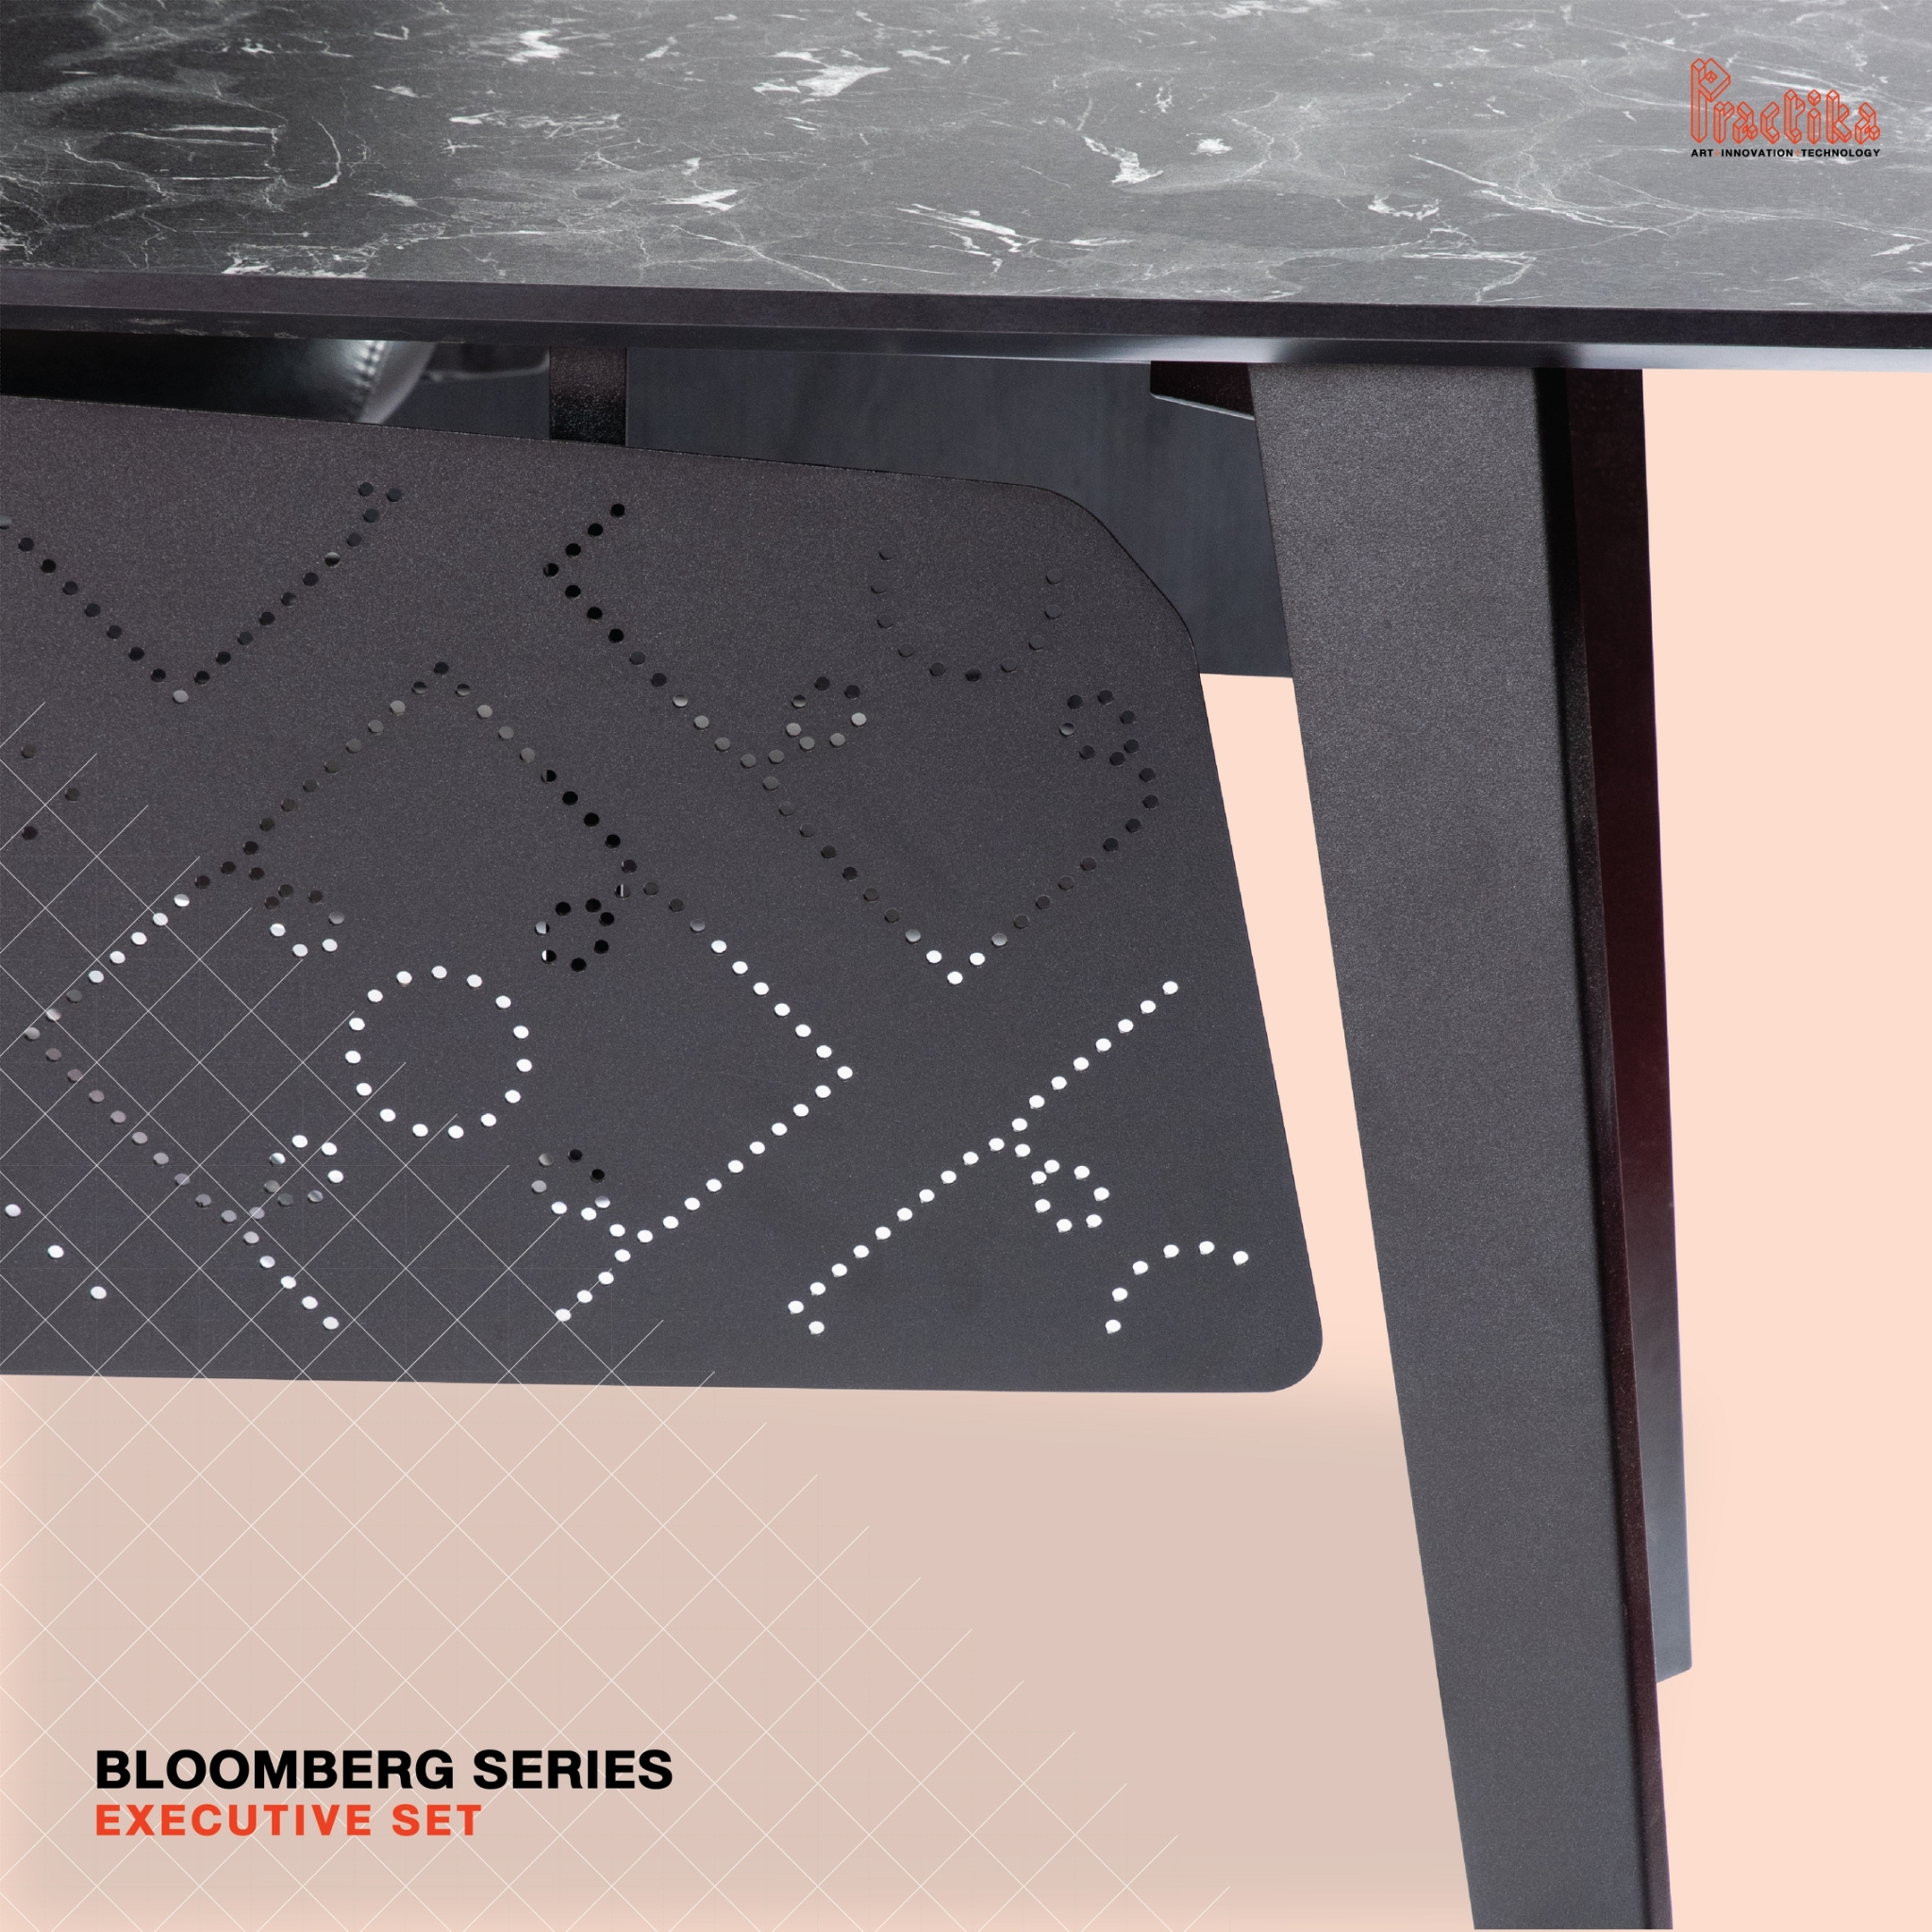 BLOOMBERG SERIES EXECUTIVE SET